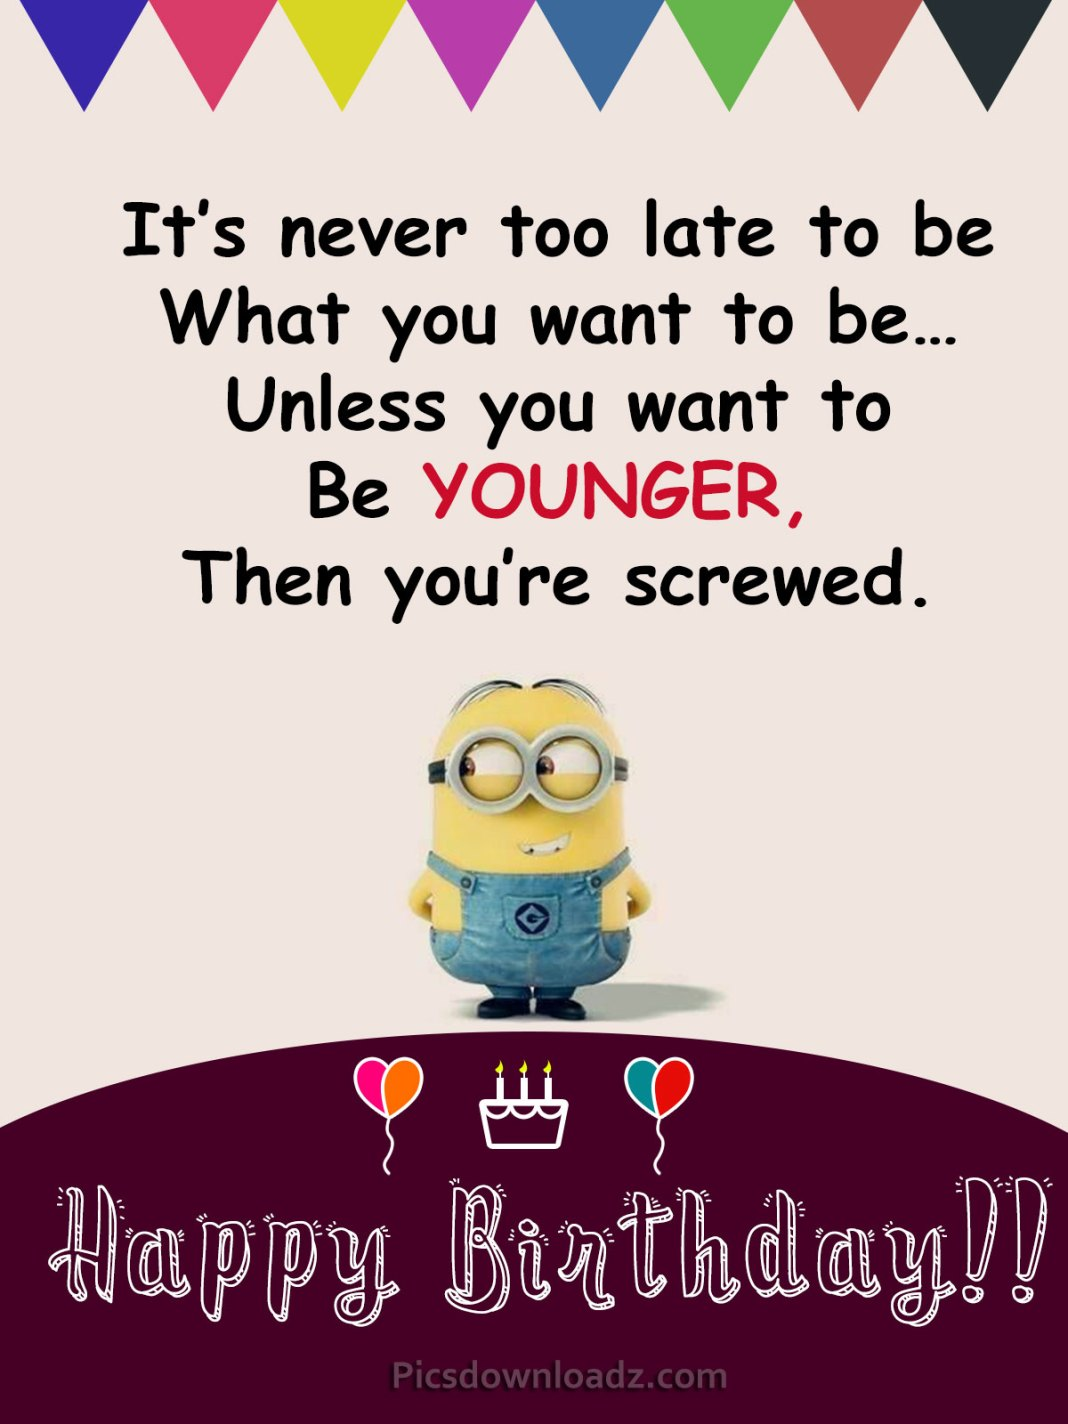 Then you're screwed  - Funny Minions Happy Birthday wishes